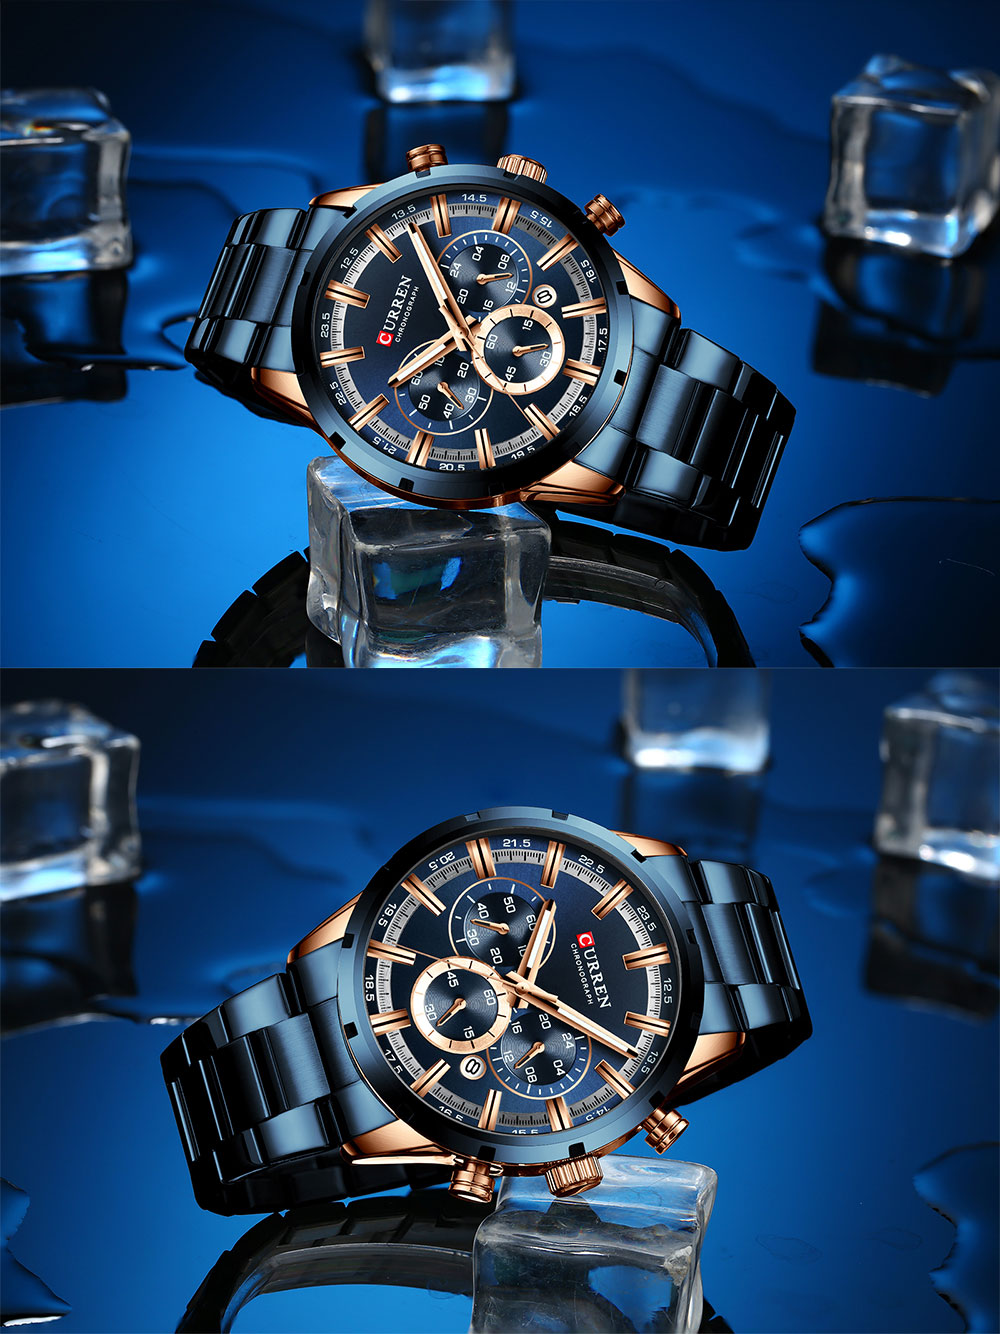 H7c1a397a2f5f4961b1f24d185e4633eez CURREN New Fashion Mens Watches Quartz Chronograph